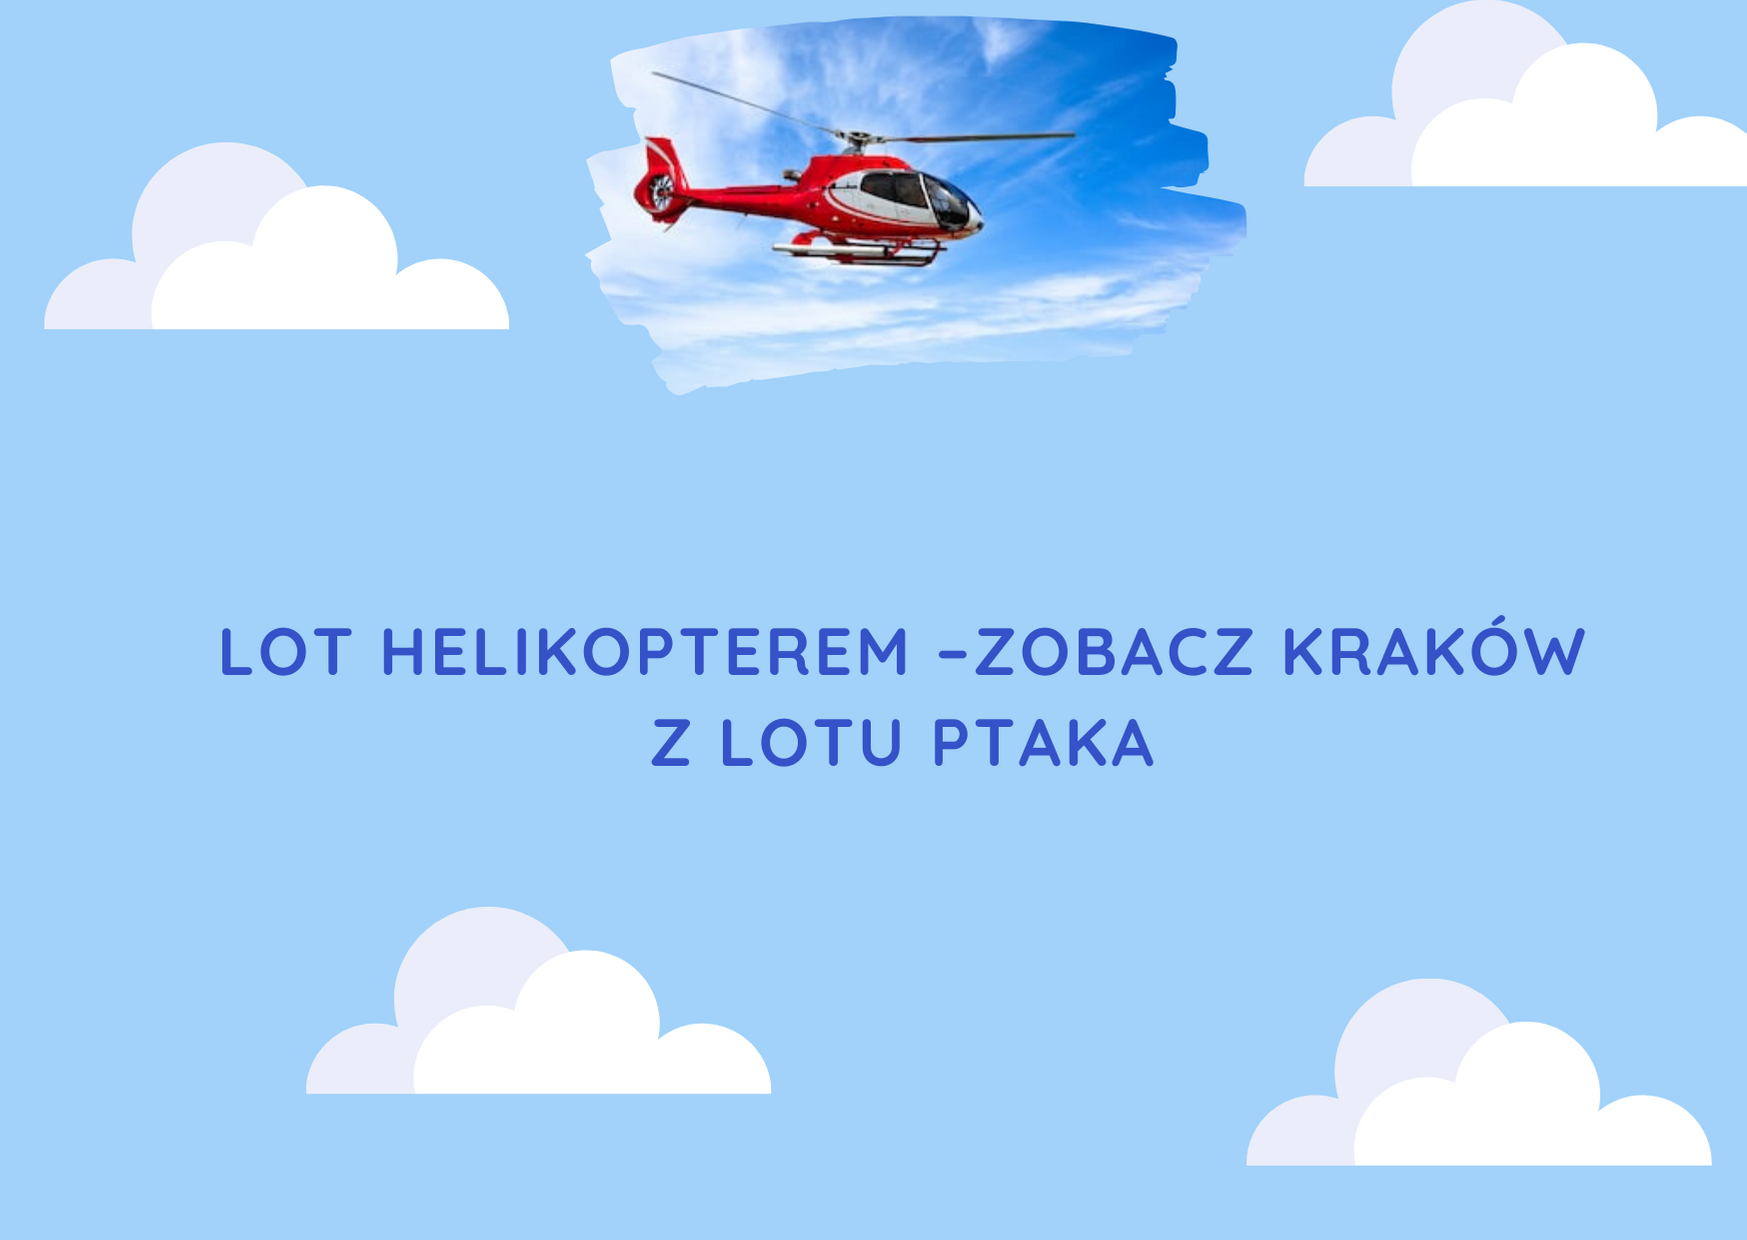 Flight by helicopter